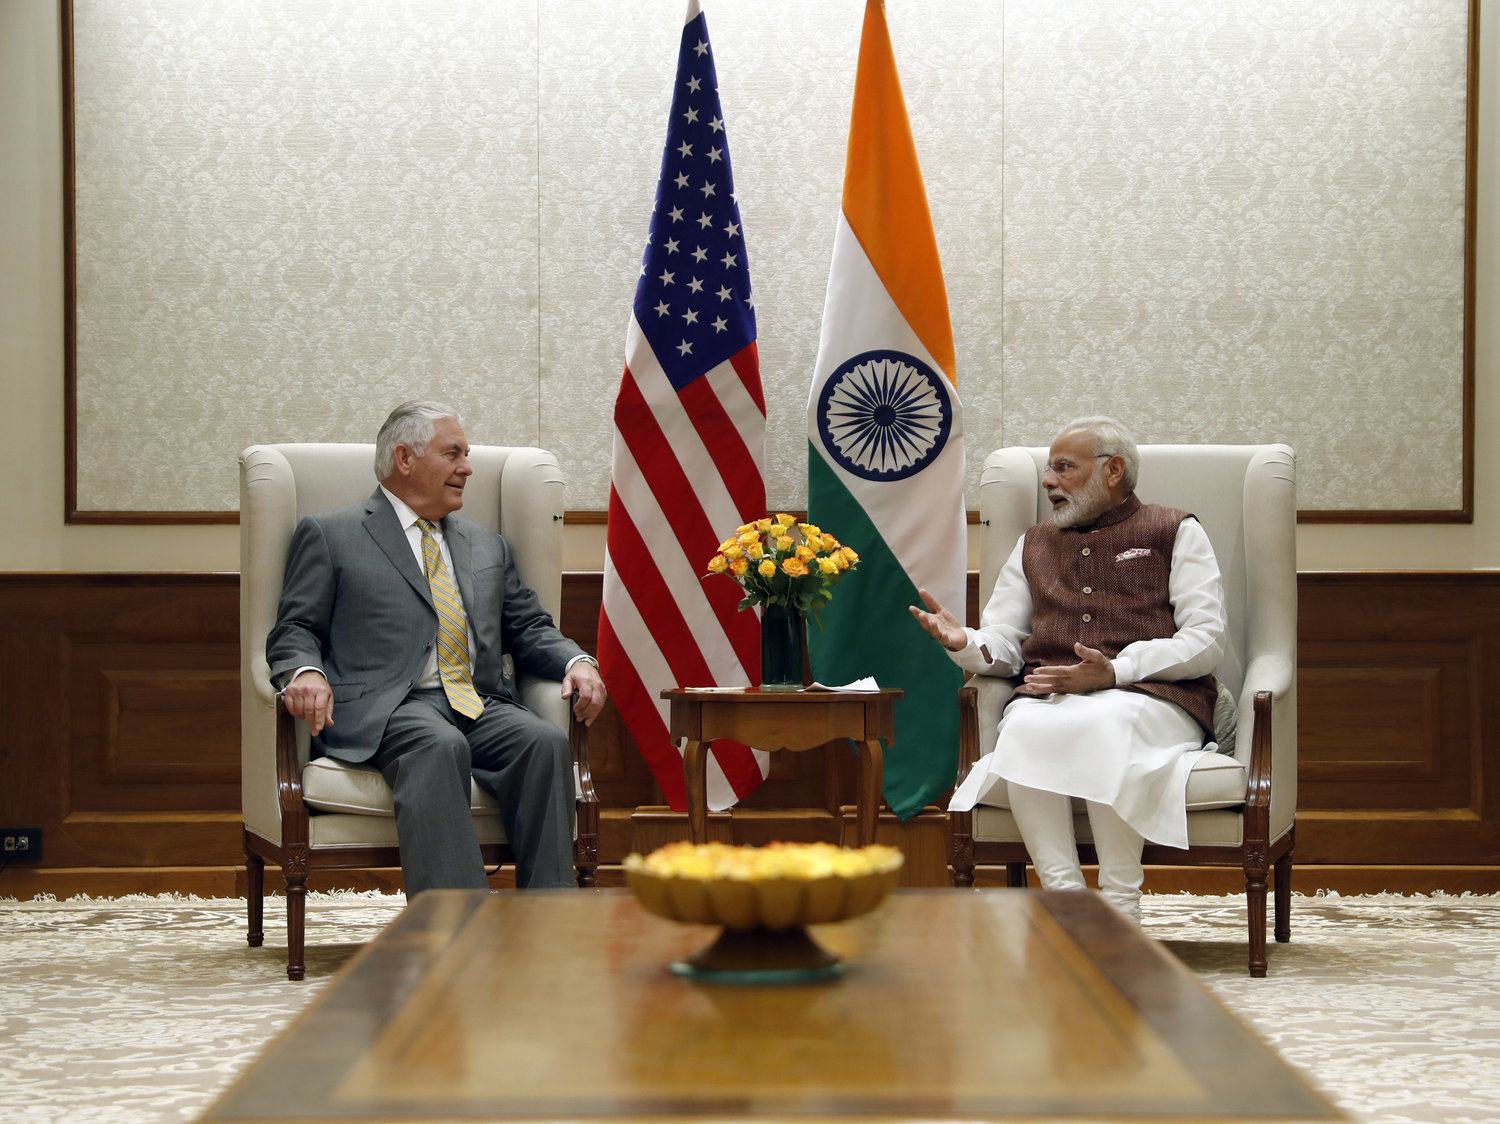 Tillerson and Indian Prime Minister Modi meet to discuss the future of their nations. Graphic courtesy of Getty images